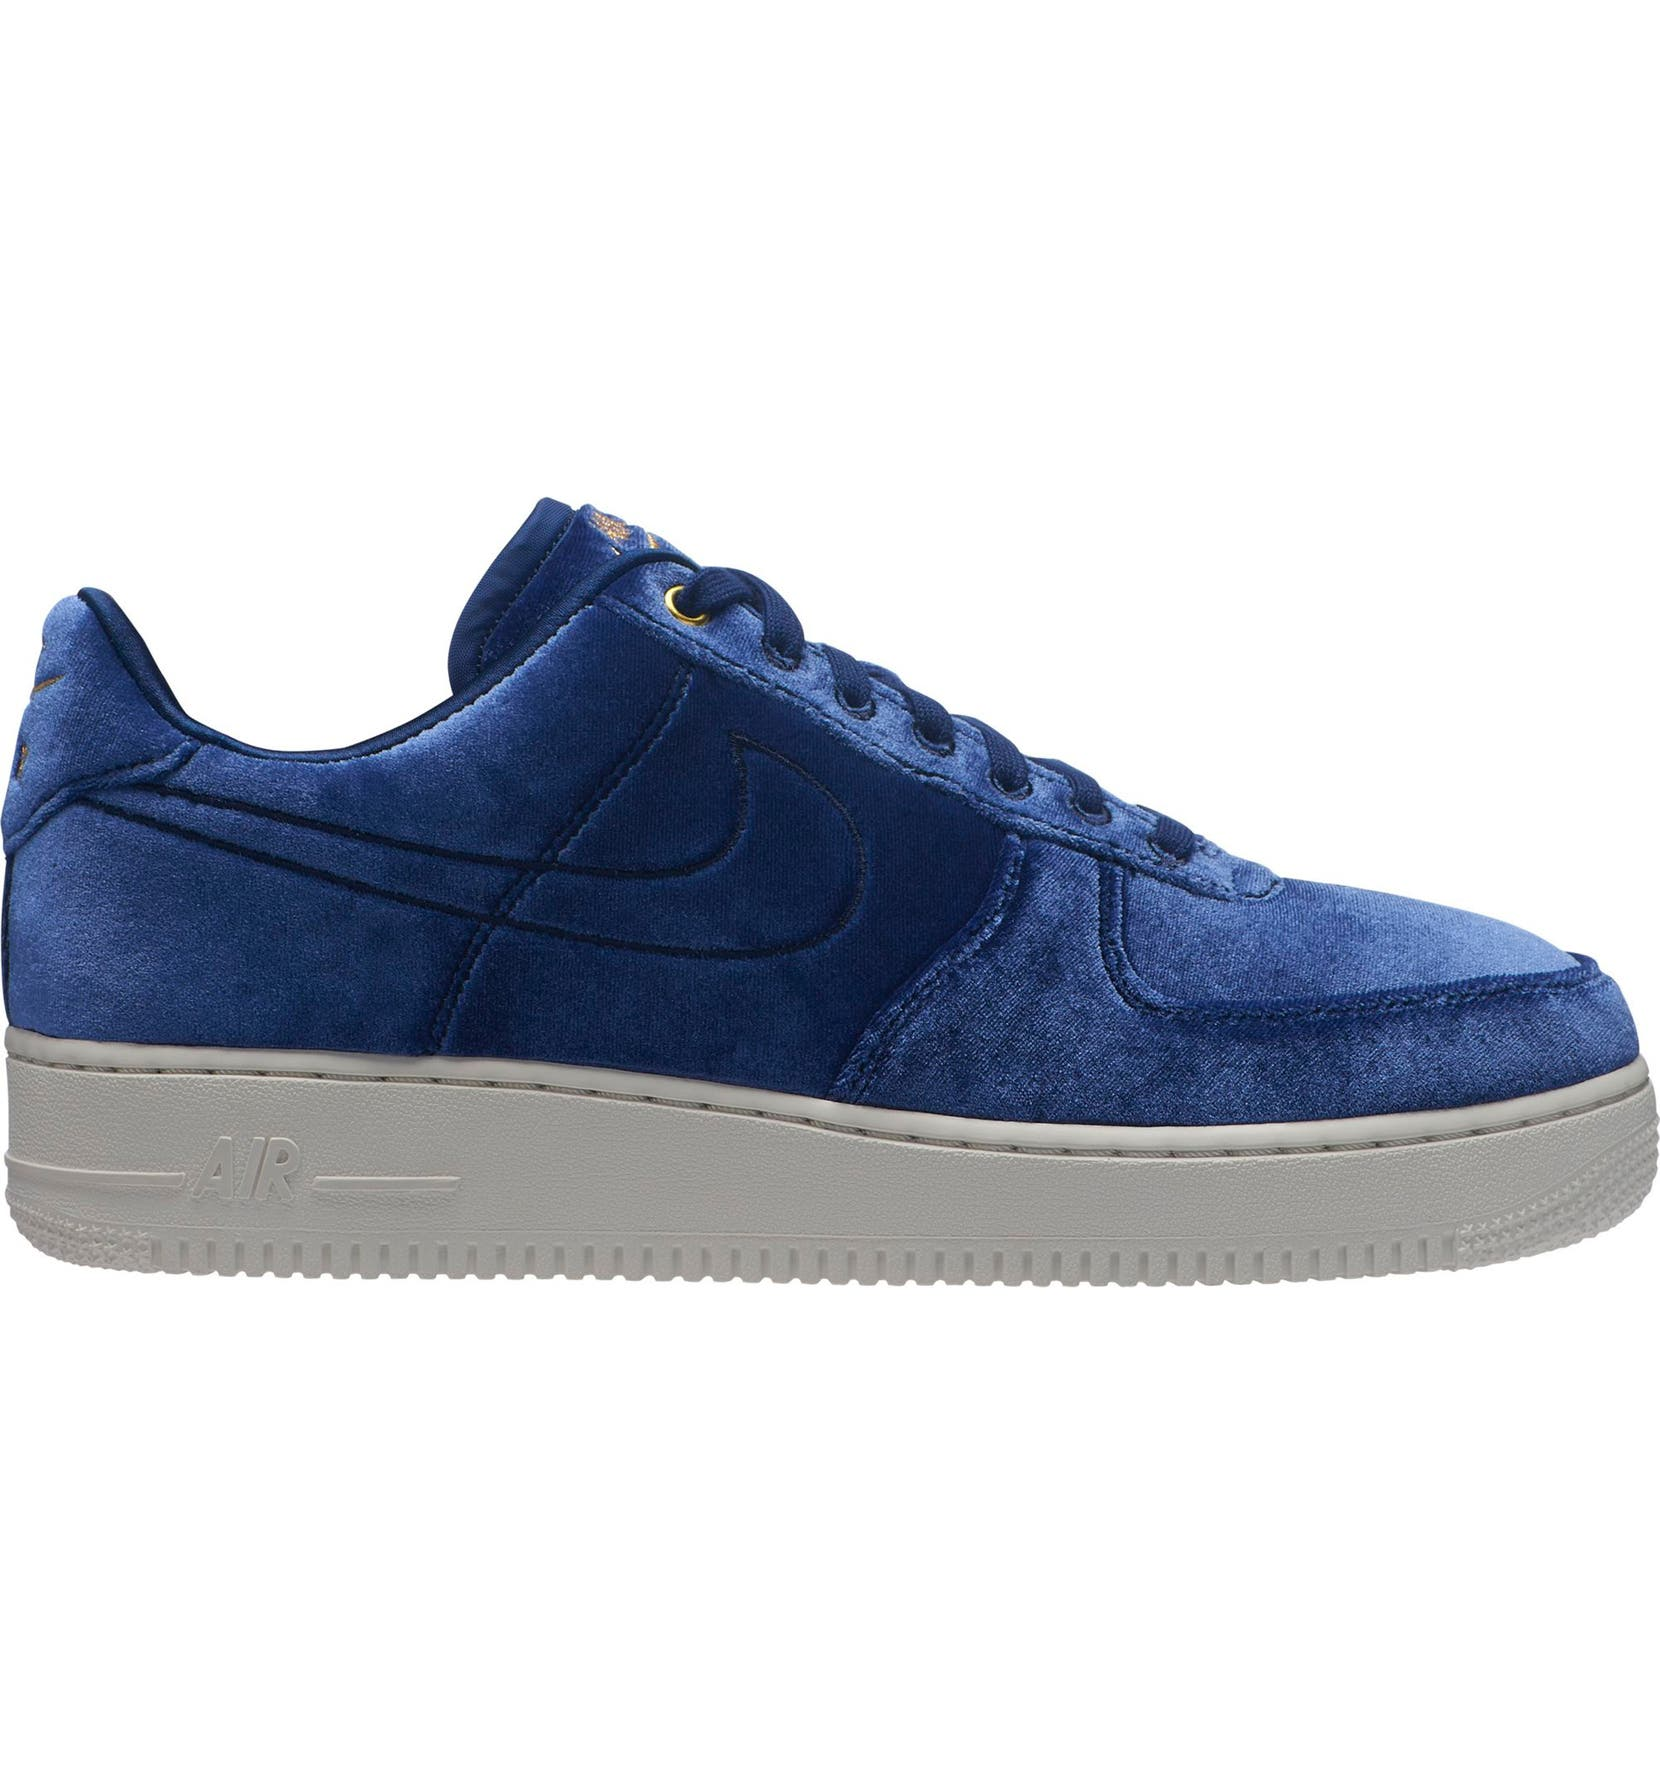 pas mal 456bf e8e10 Air Force 1 '07 Premium 3 Sneaker